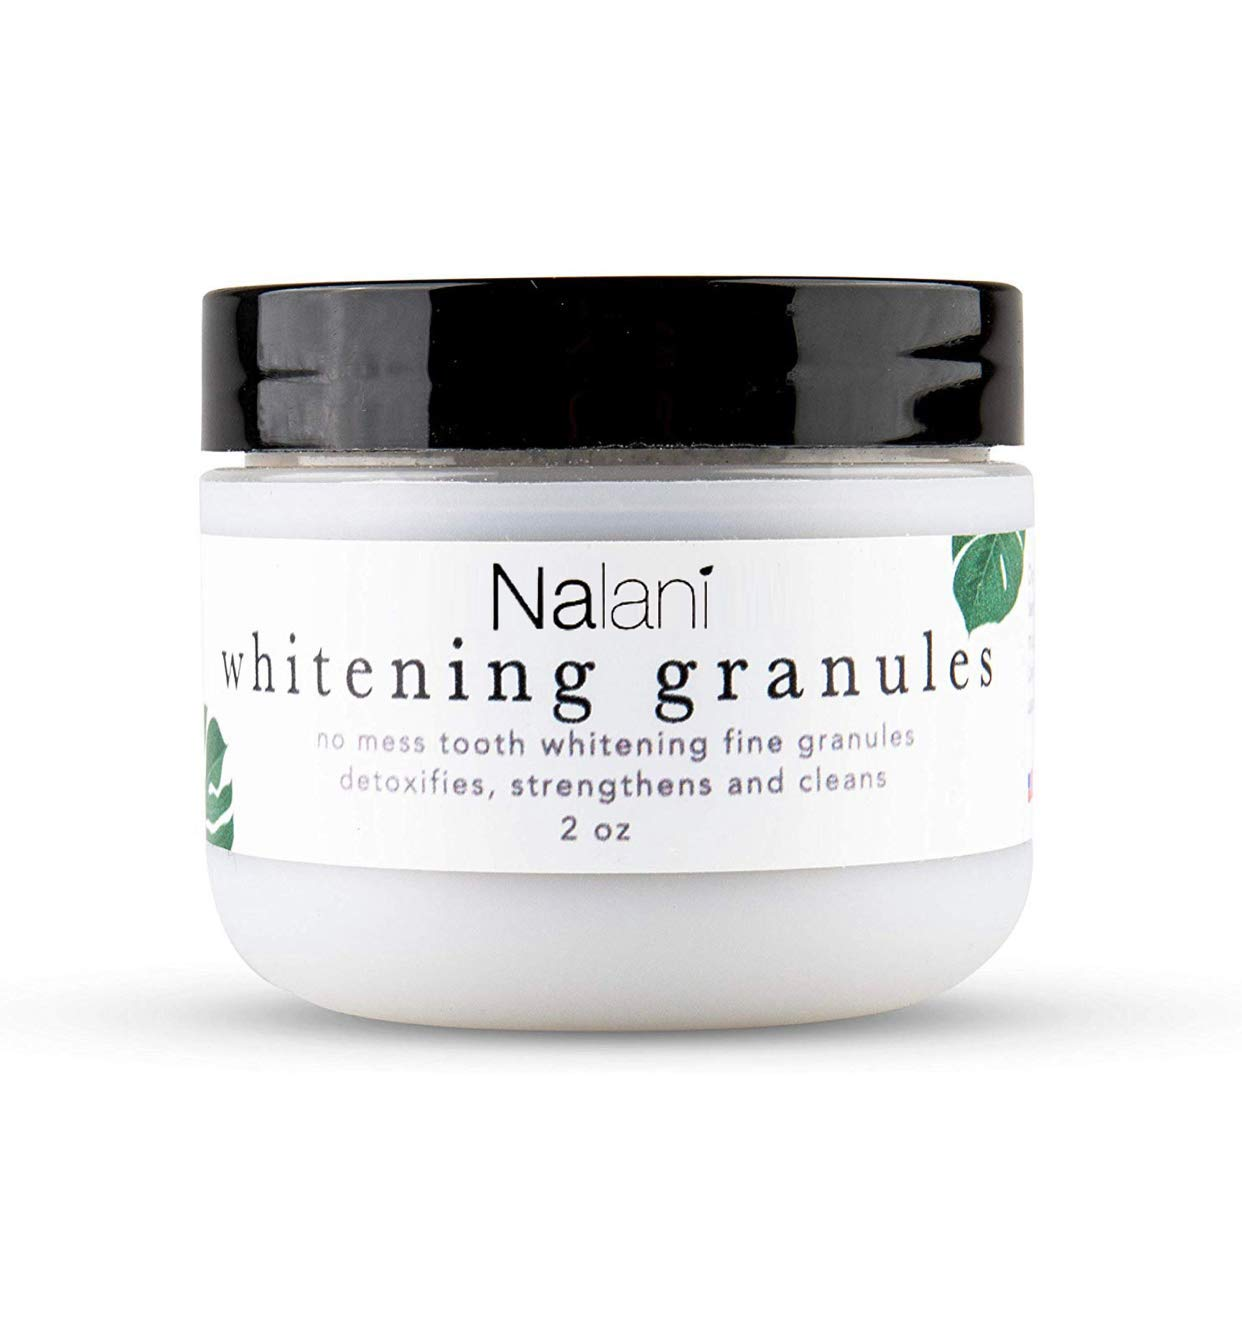 Nalani All Natural Organic No Mess Teeth Whitening Granules with Activated Charcoal - Spearmint - Better Than Powder, Gel, Strips - Made in USA - Made with Anti-Microbial Ingredients - 2oz